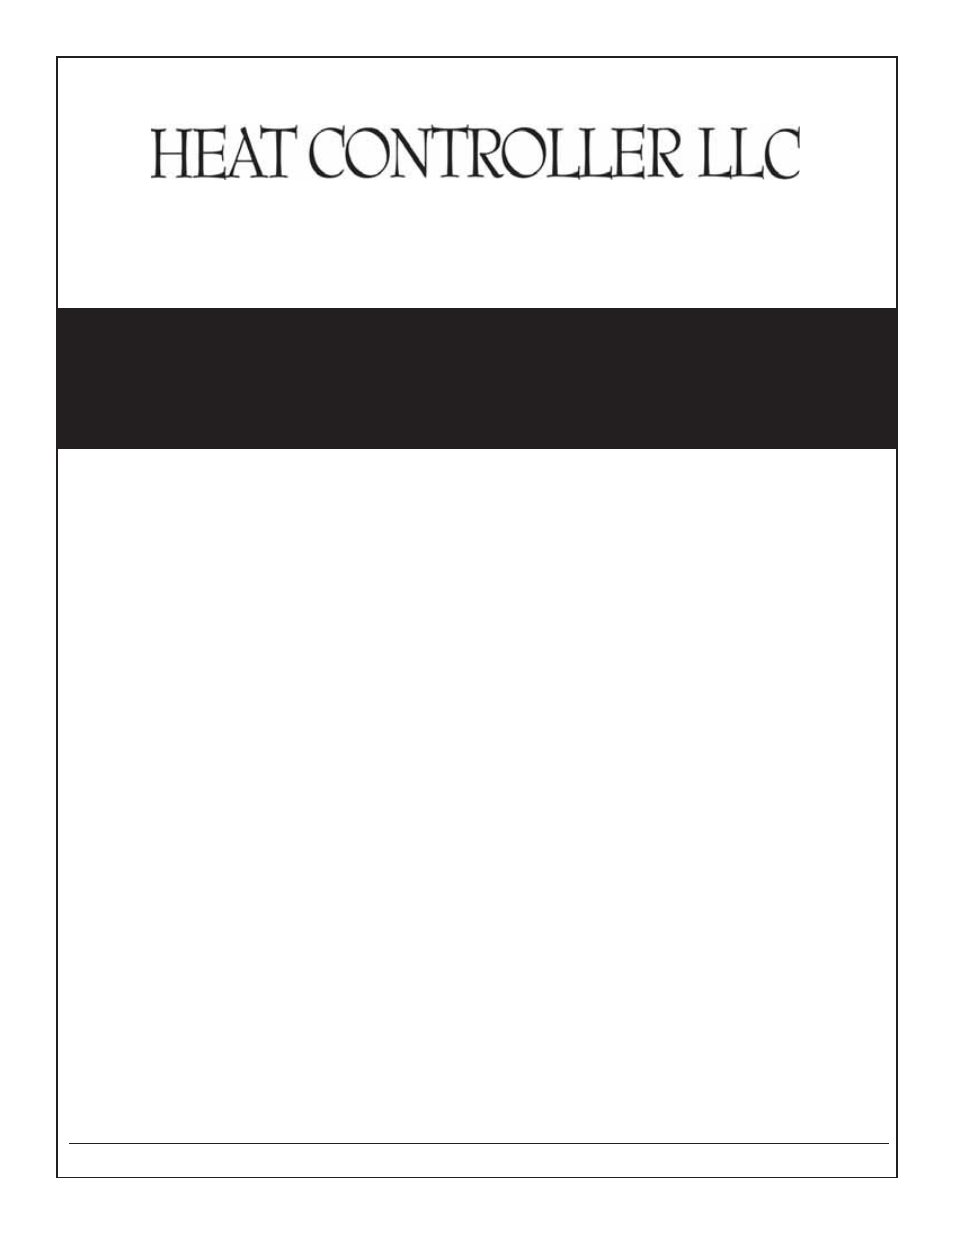 Comfort-Aire HTS Series Split System,Two Stage, 2-5 Tons